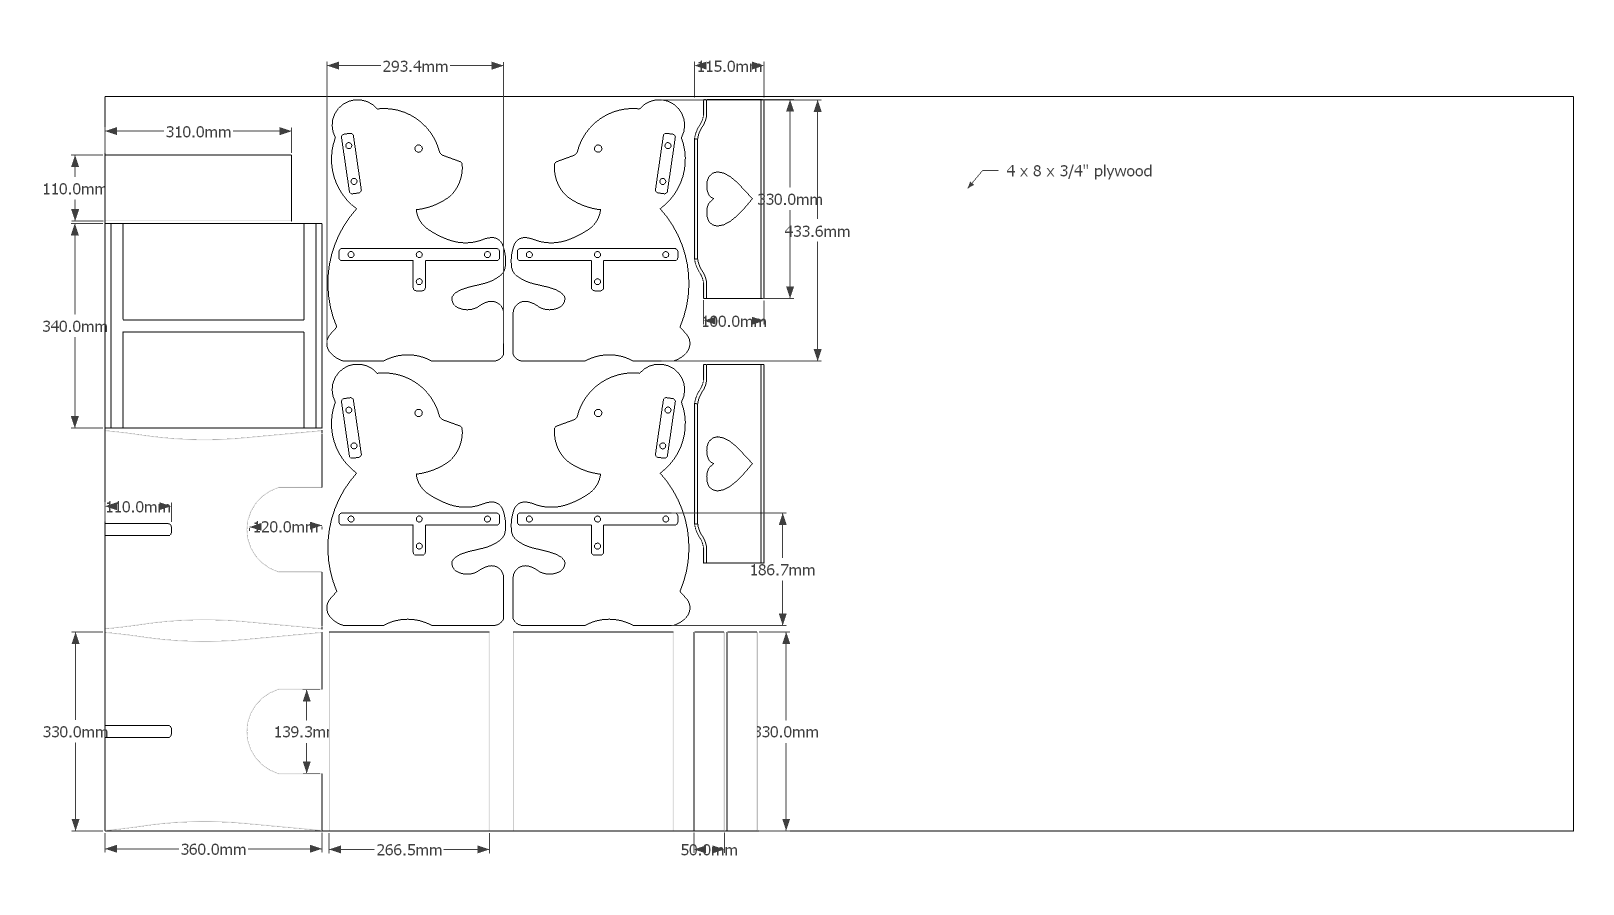 Picture of Plan Layout